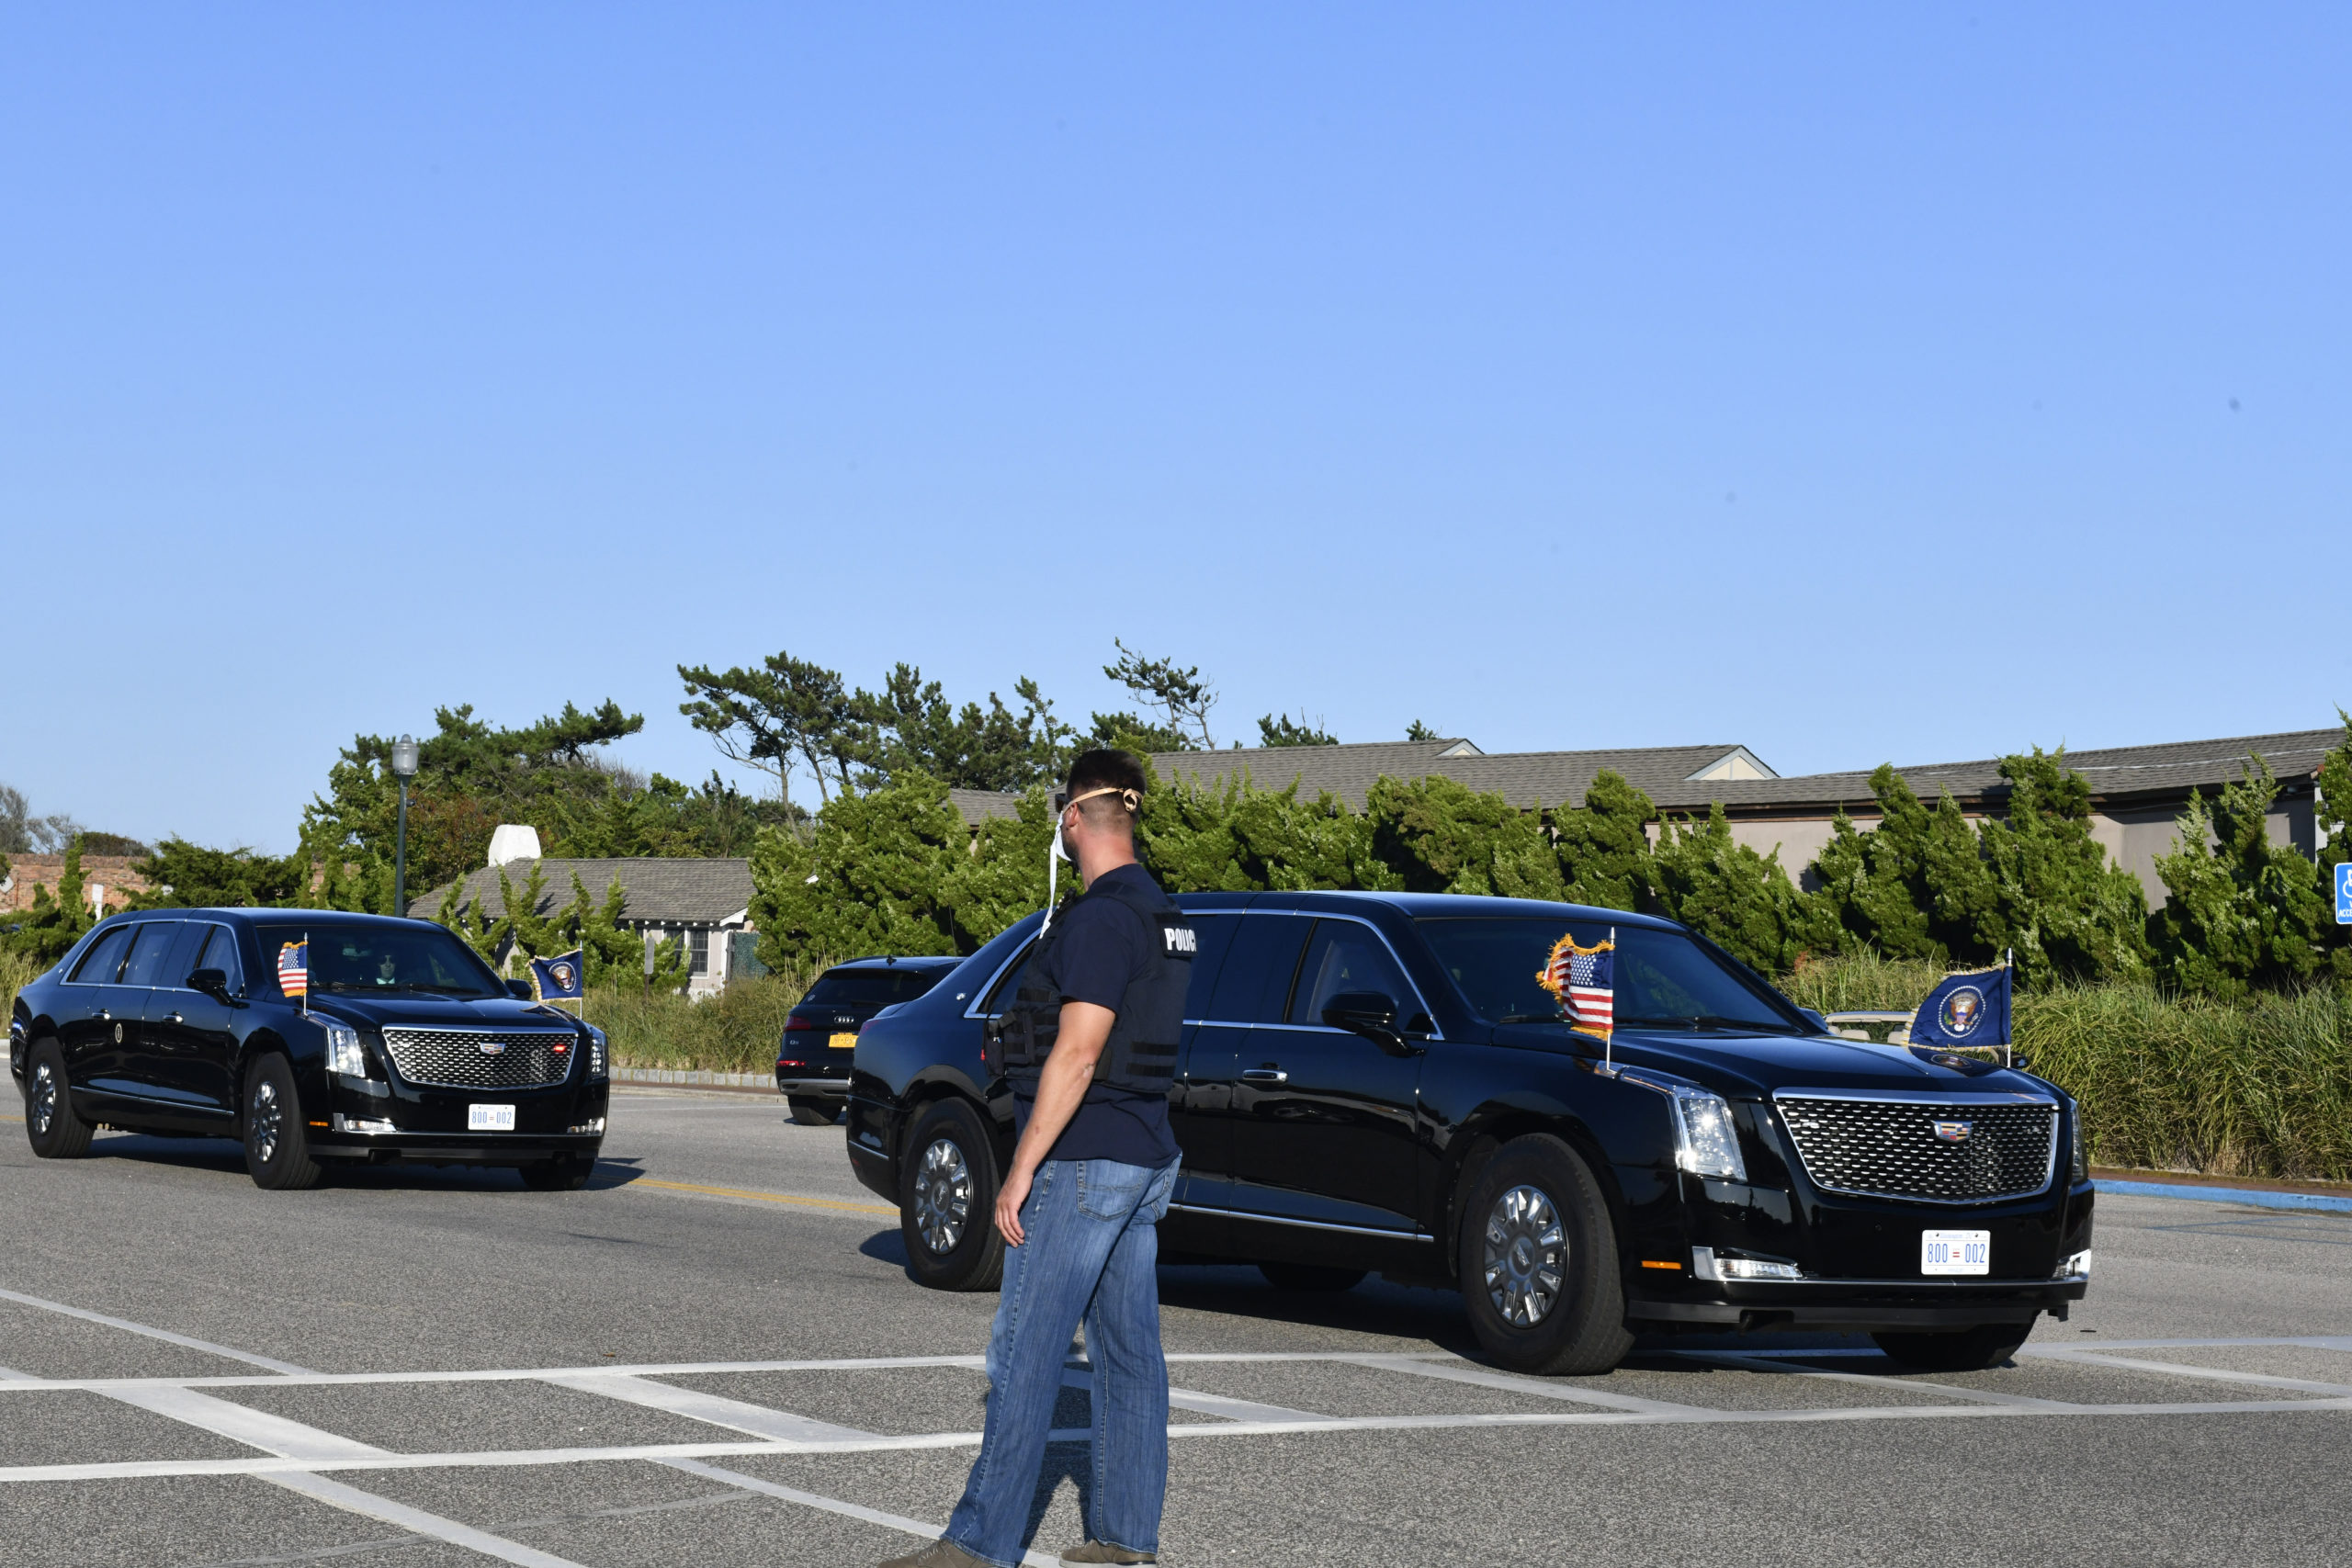 President Donald Trump's motorcade on the way to a fundraising event in Southampton Village on Saturday afternoon.  DANA SHAW